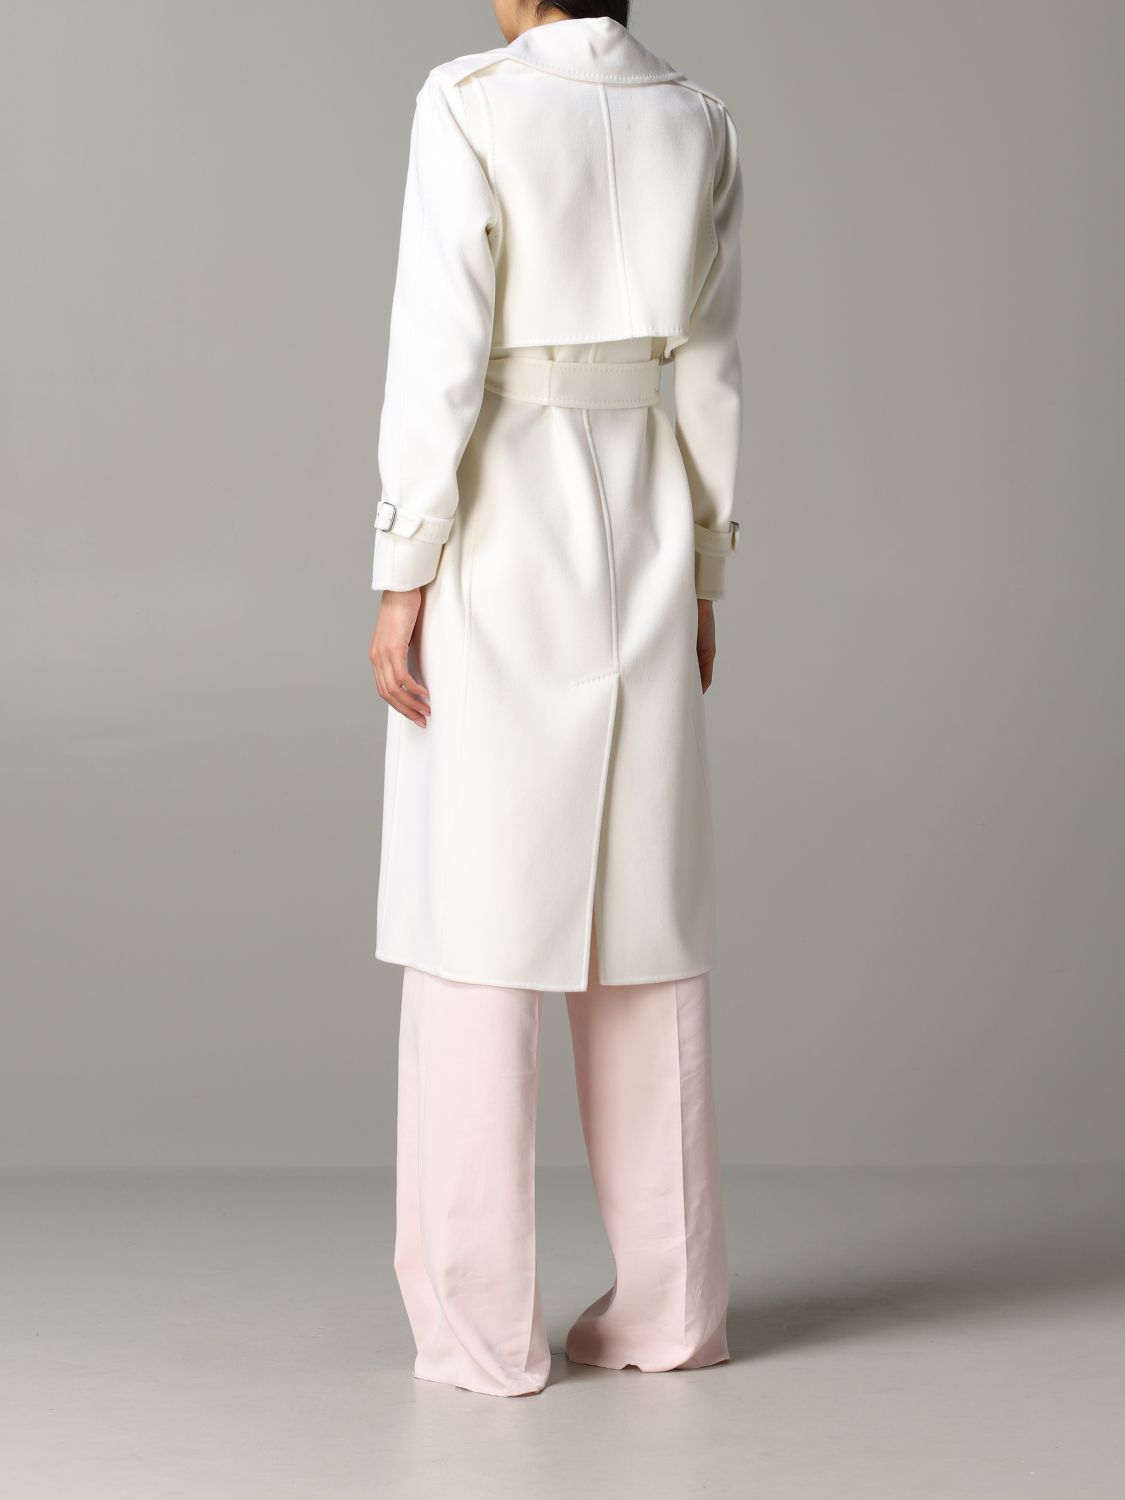 Max Mara Gianna dressing gown coat with removable vest white 3